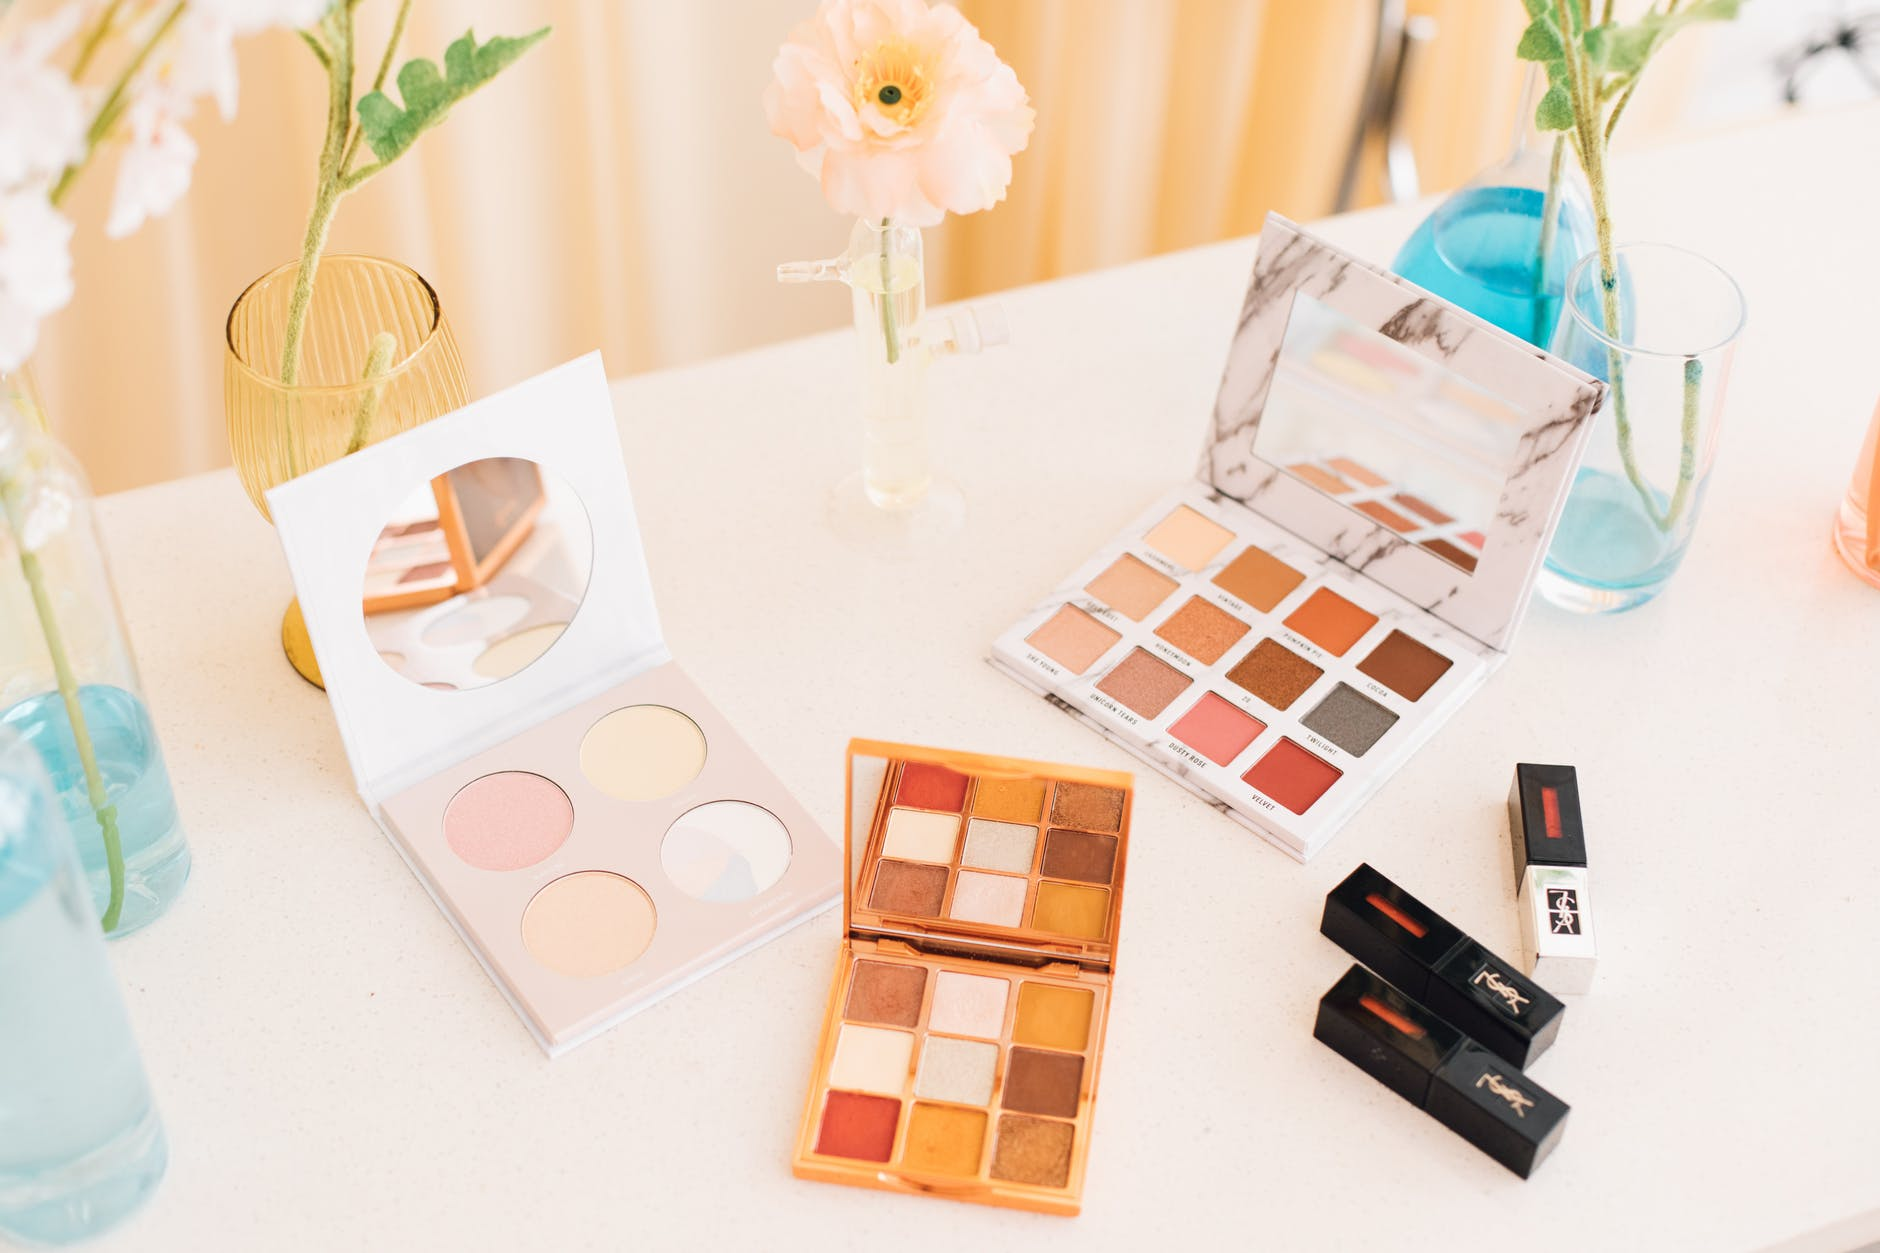 home decluttering by throwing away expired makeup